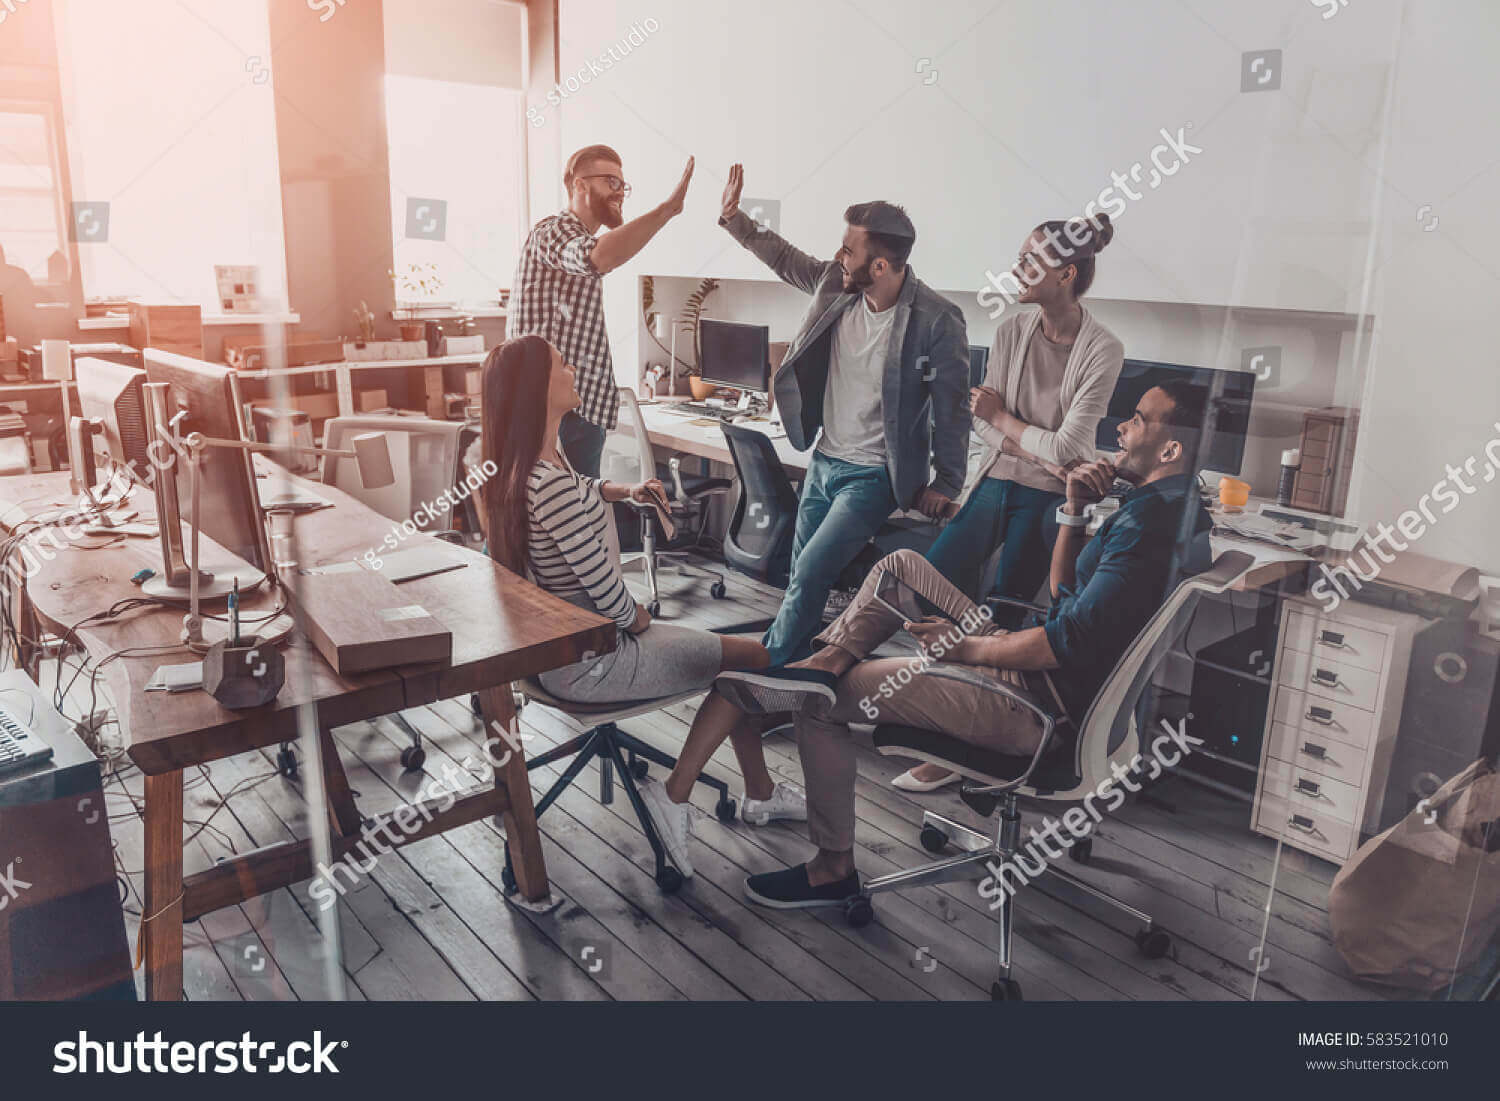 stock-photo-we-did-it-two-cheerful-young-business-people-giving-high-five-while-their-colleagues-looking-at-583521010